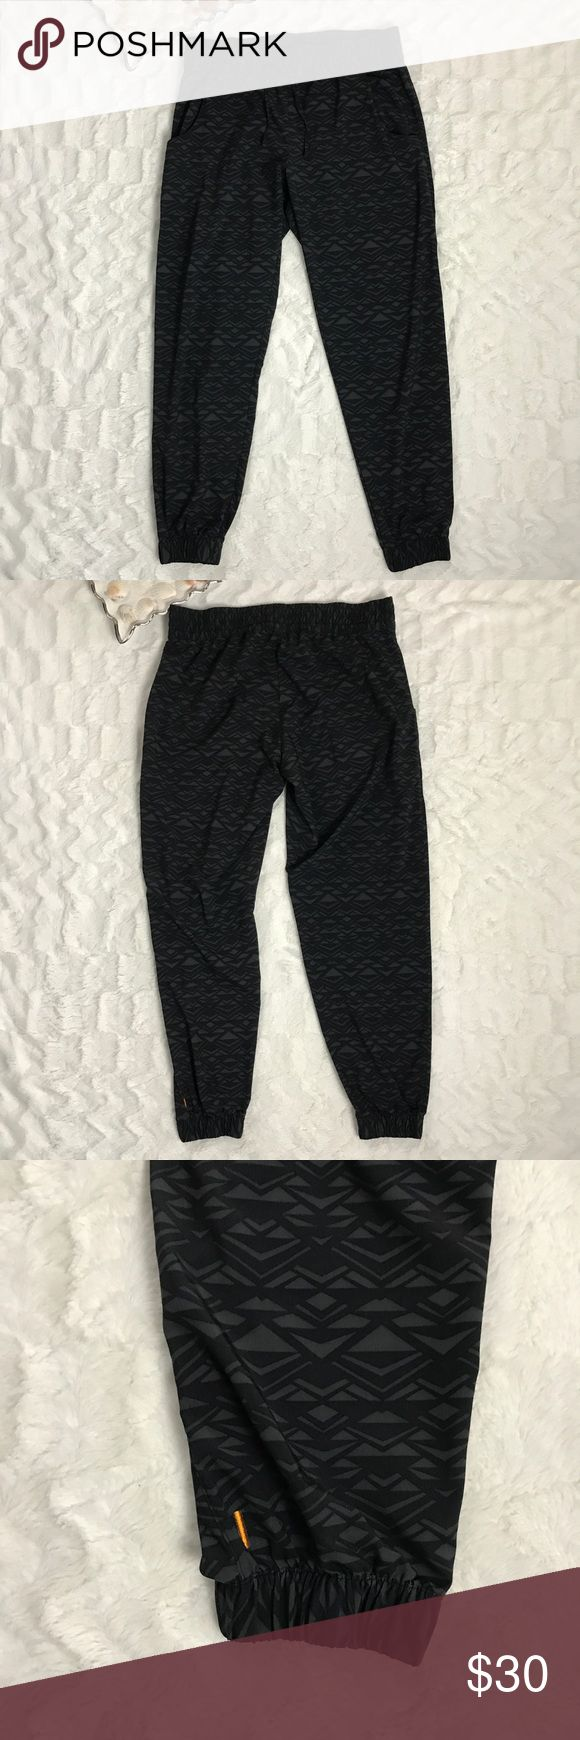 Lucy Athletic Joggers drawstring waist M Lucy women's joggers elastic waist with drawstring printed design cinched ankle M  Measurements  Length: 37 inches Inseam: 28 inches  Waist: 16 inches  TAG IS A BIT CURLED Pants Track Pants & Joggers